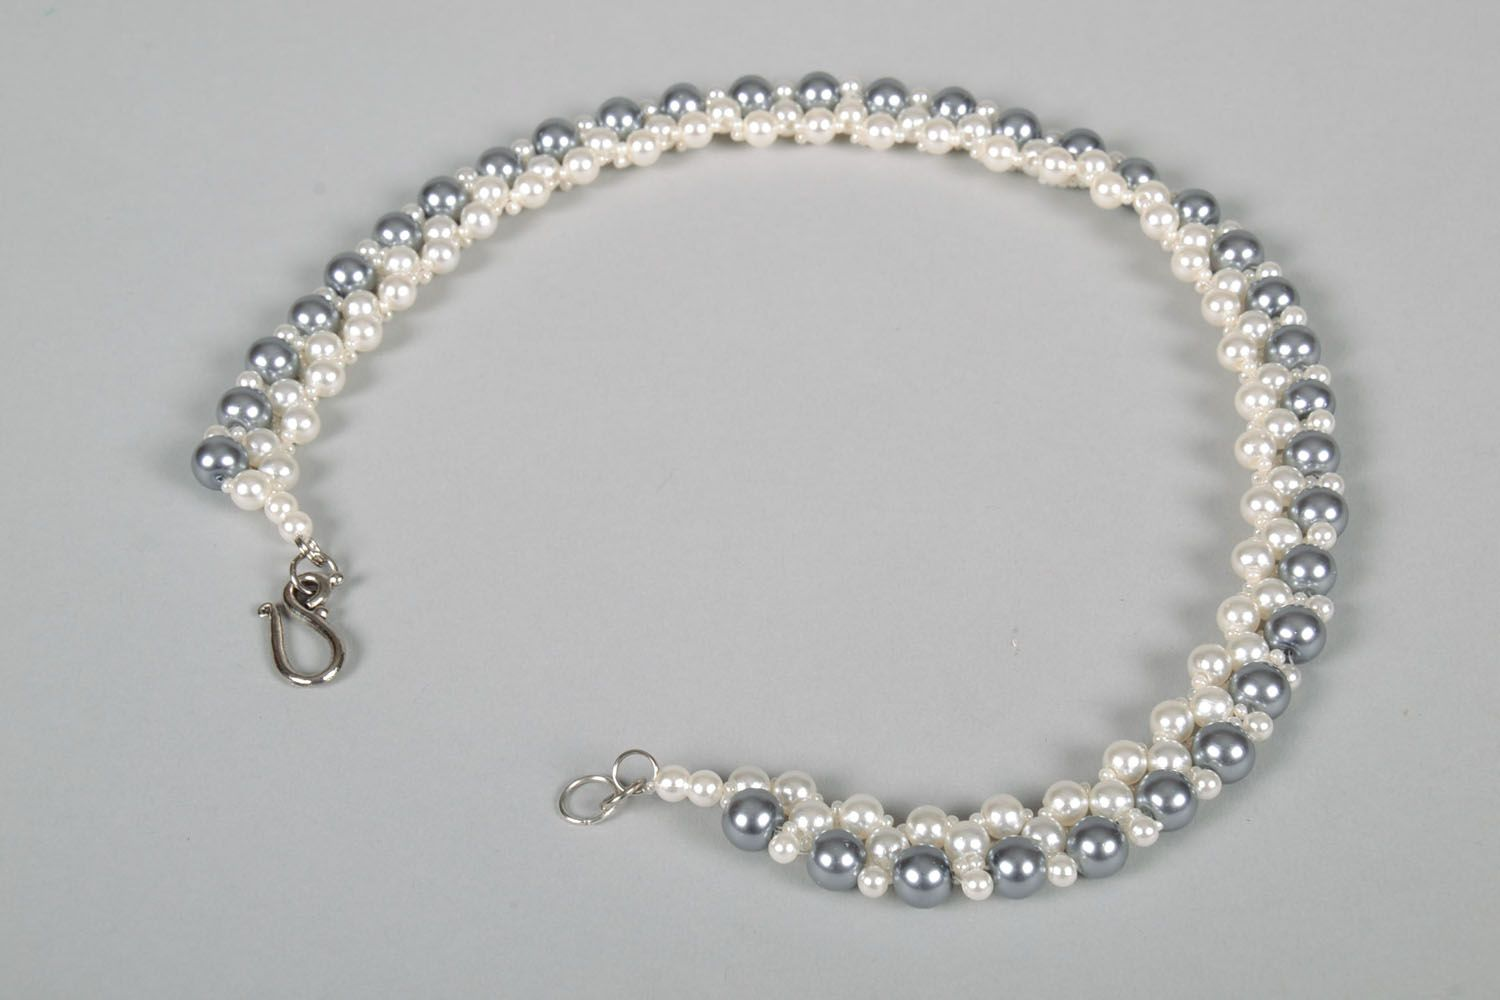 Necklace with artificial pearls photo 5